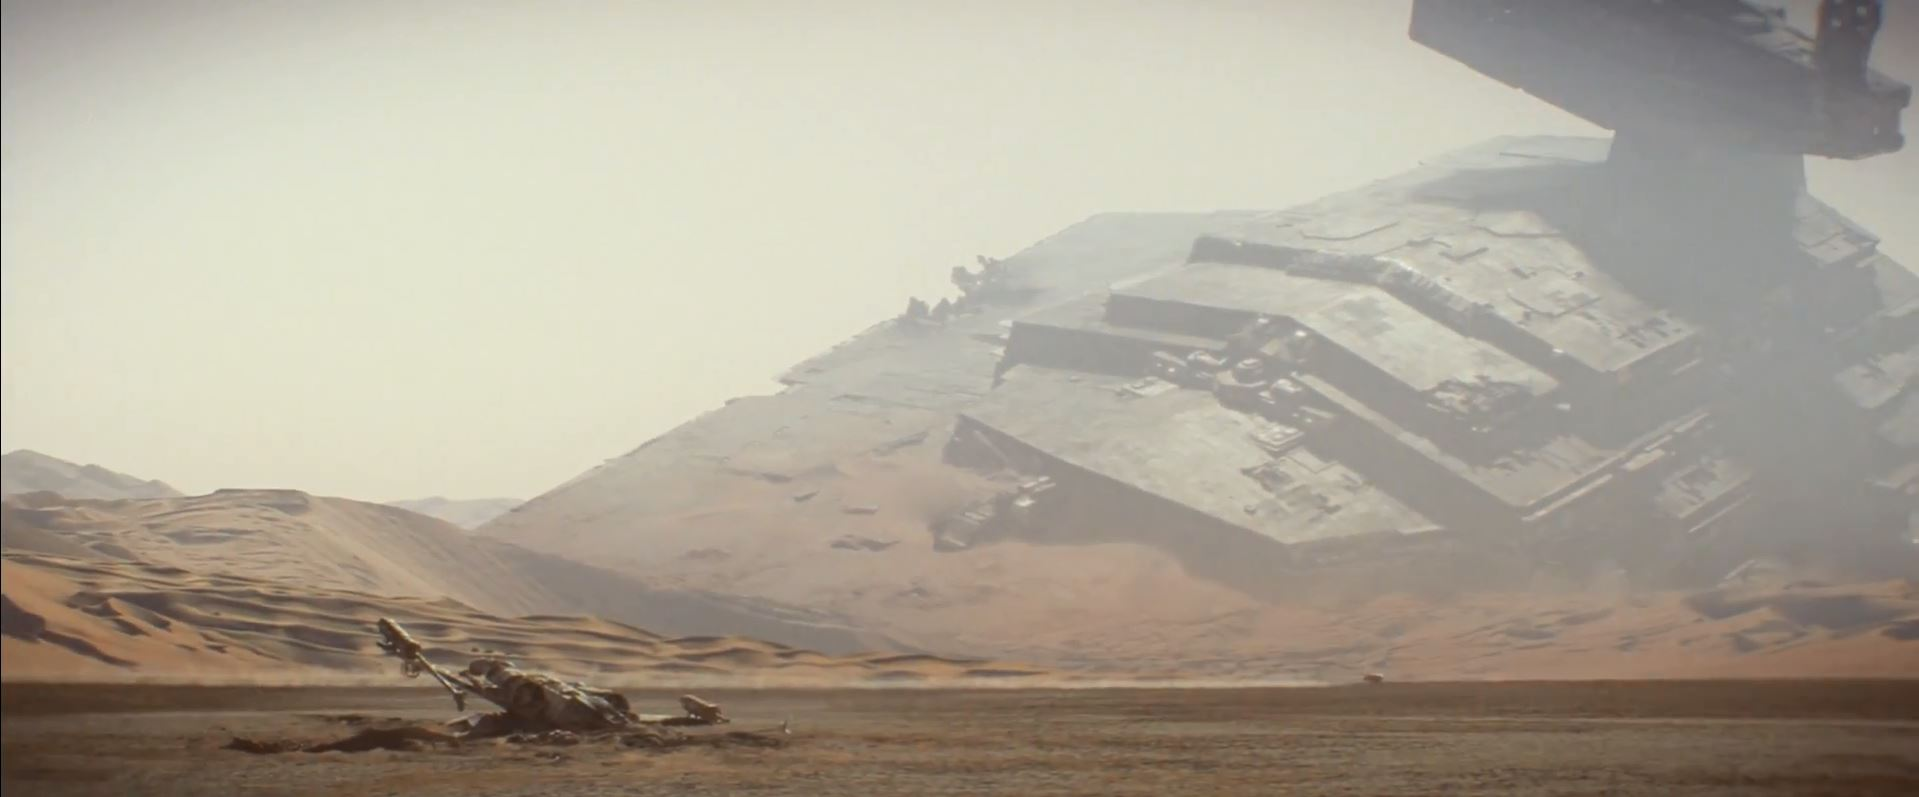 Crashed Star Destroyer on Tatooine